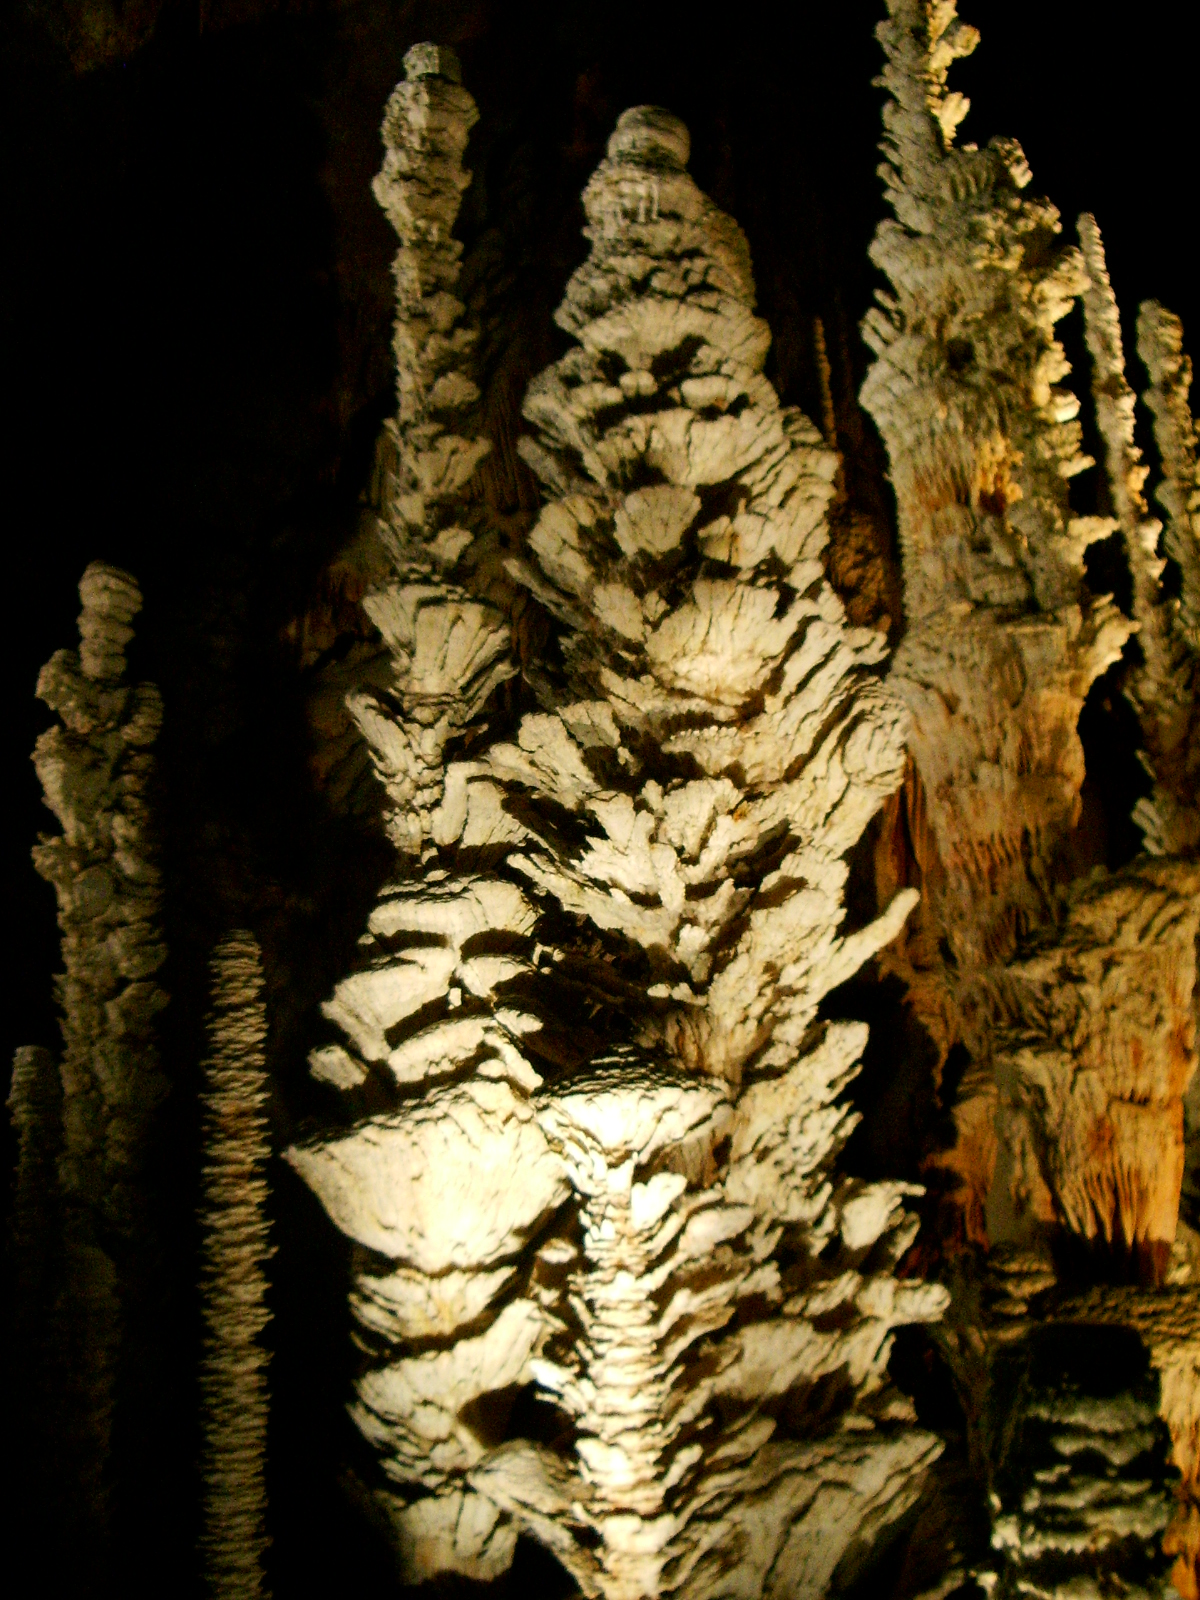 Photograph of Stalagmite assiettes.